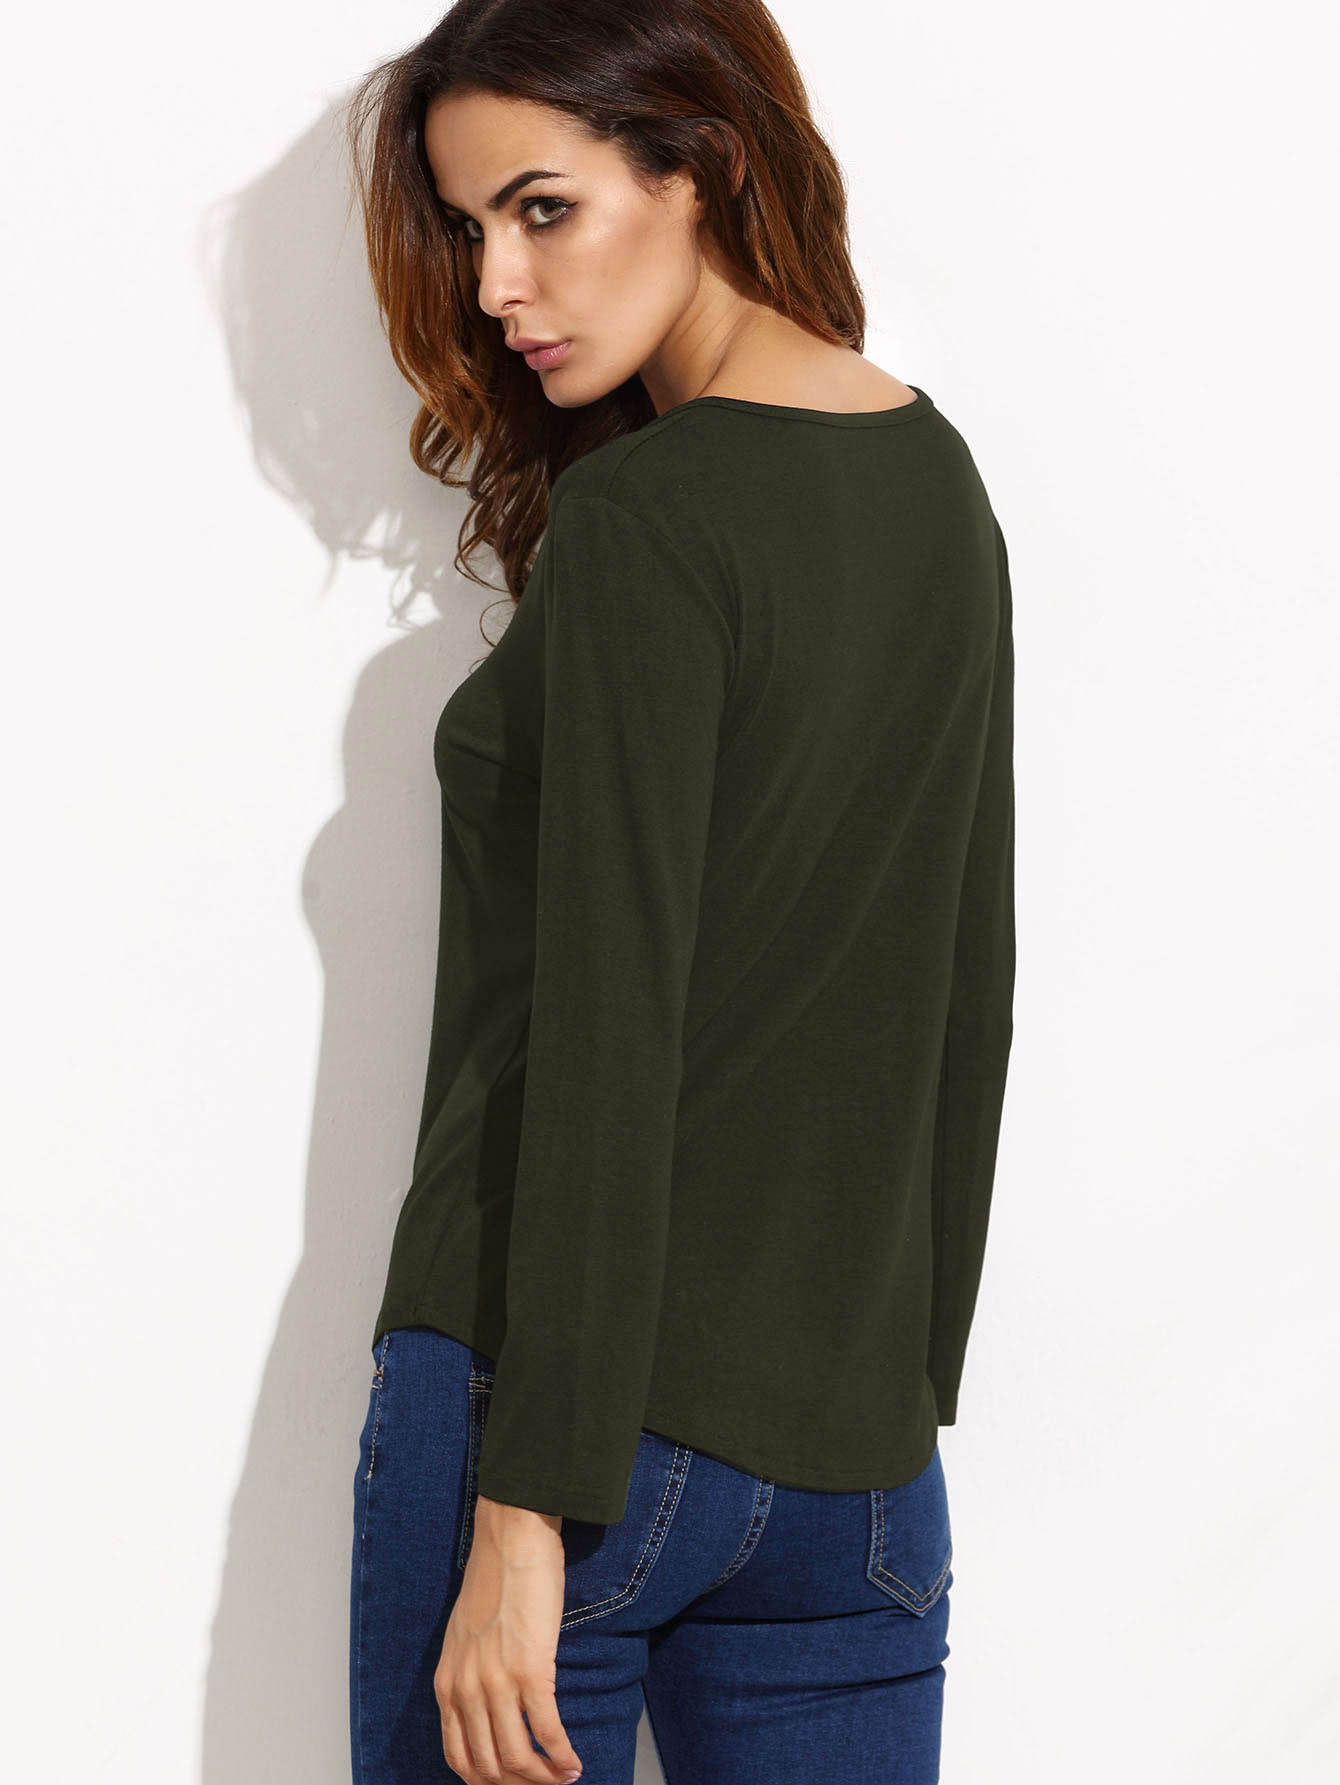 Army Green Lace Up Long Sleeve T-shirt